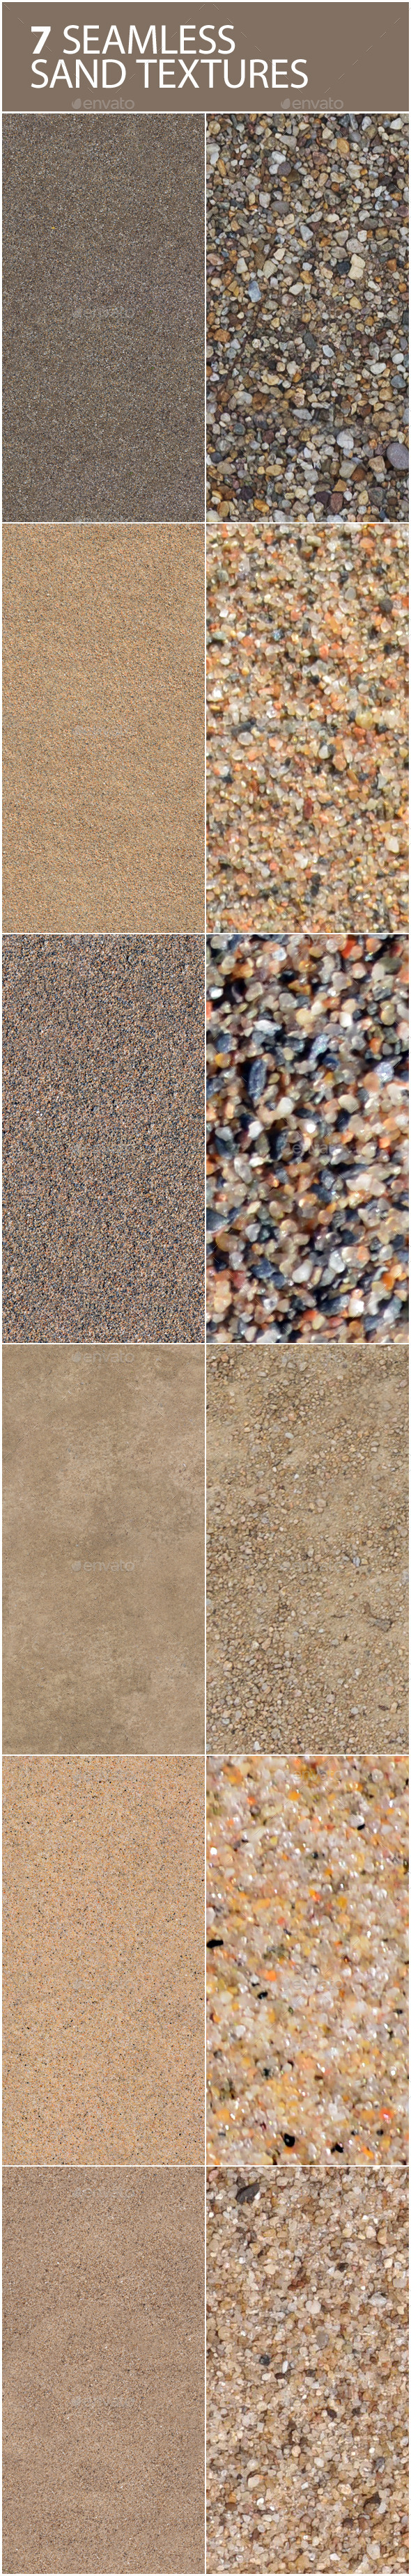 6 seamless textures of sand - 3DOcean Item for Sale